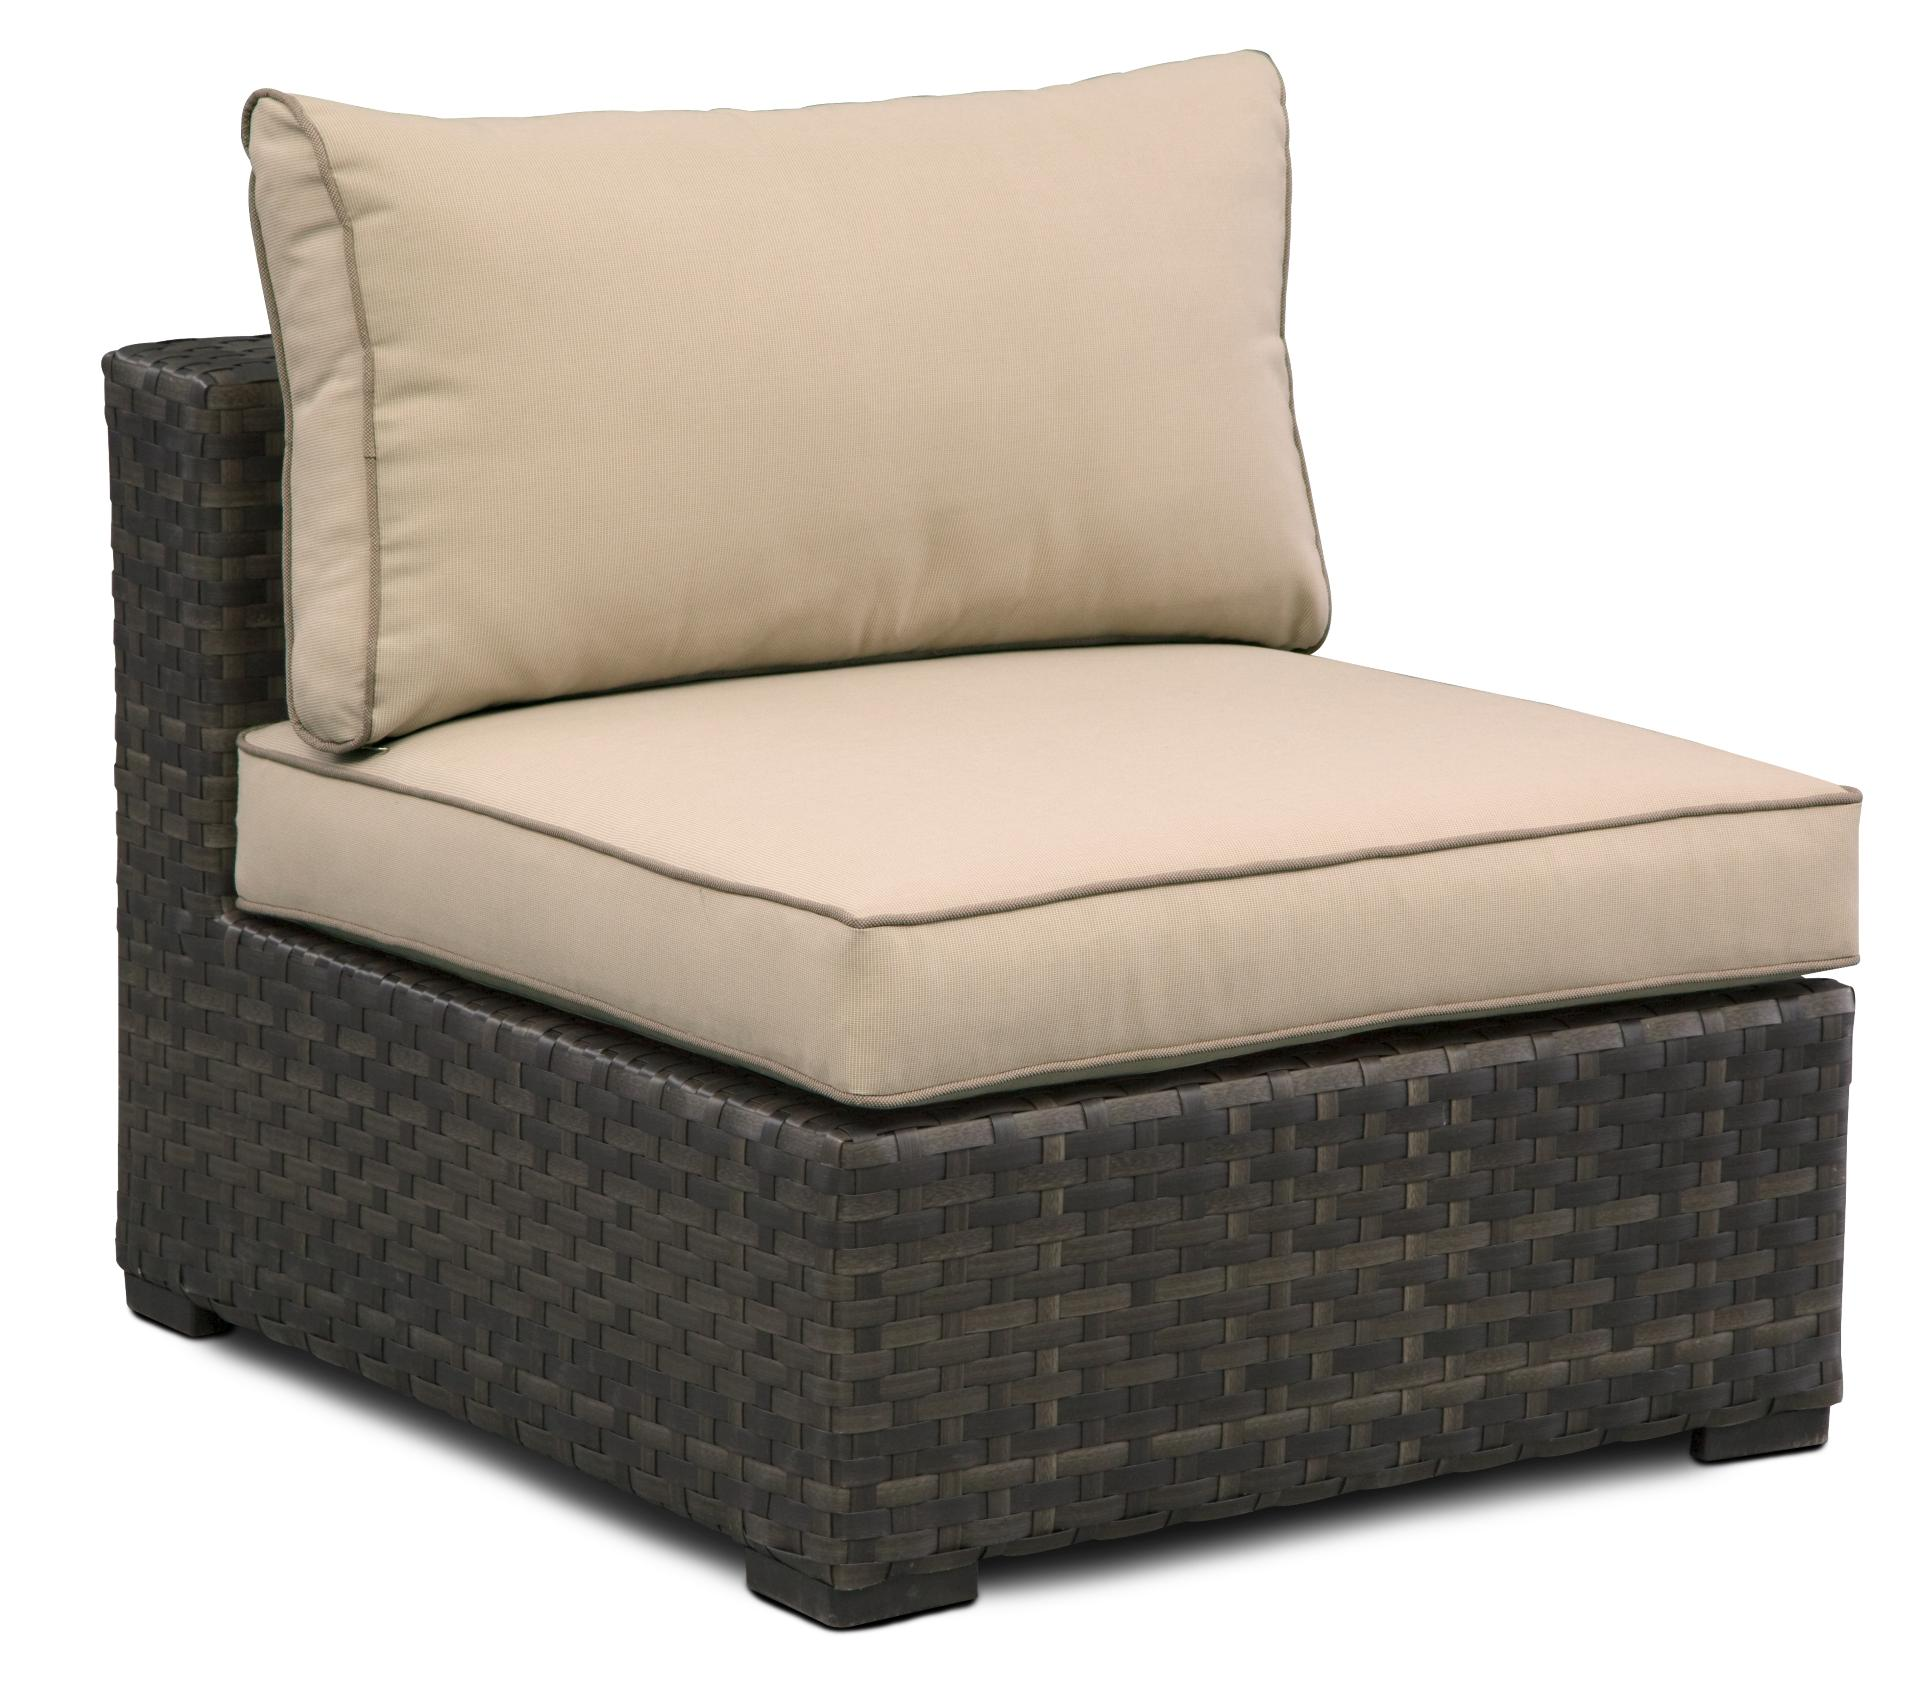 Mattress Warehouse Charlotte Nc Upholstered Beds Are